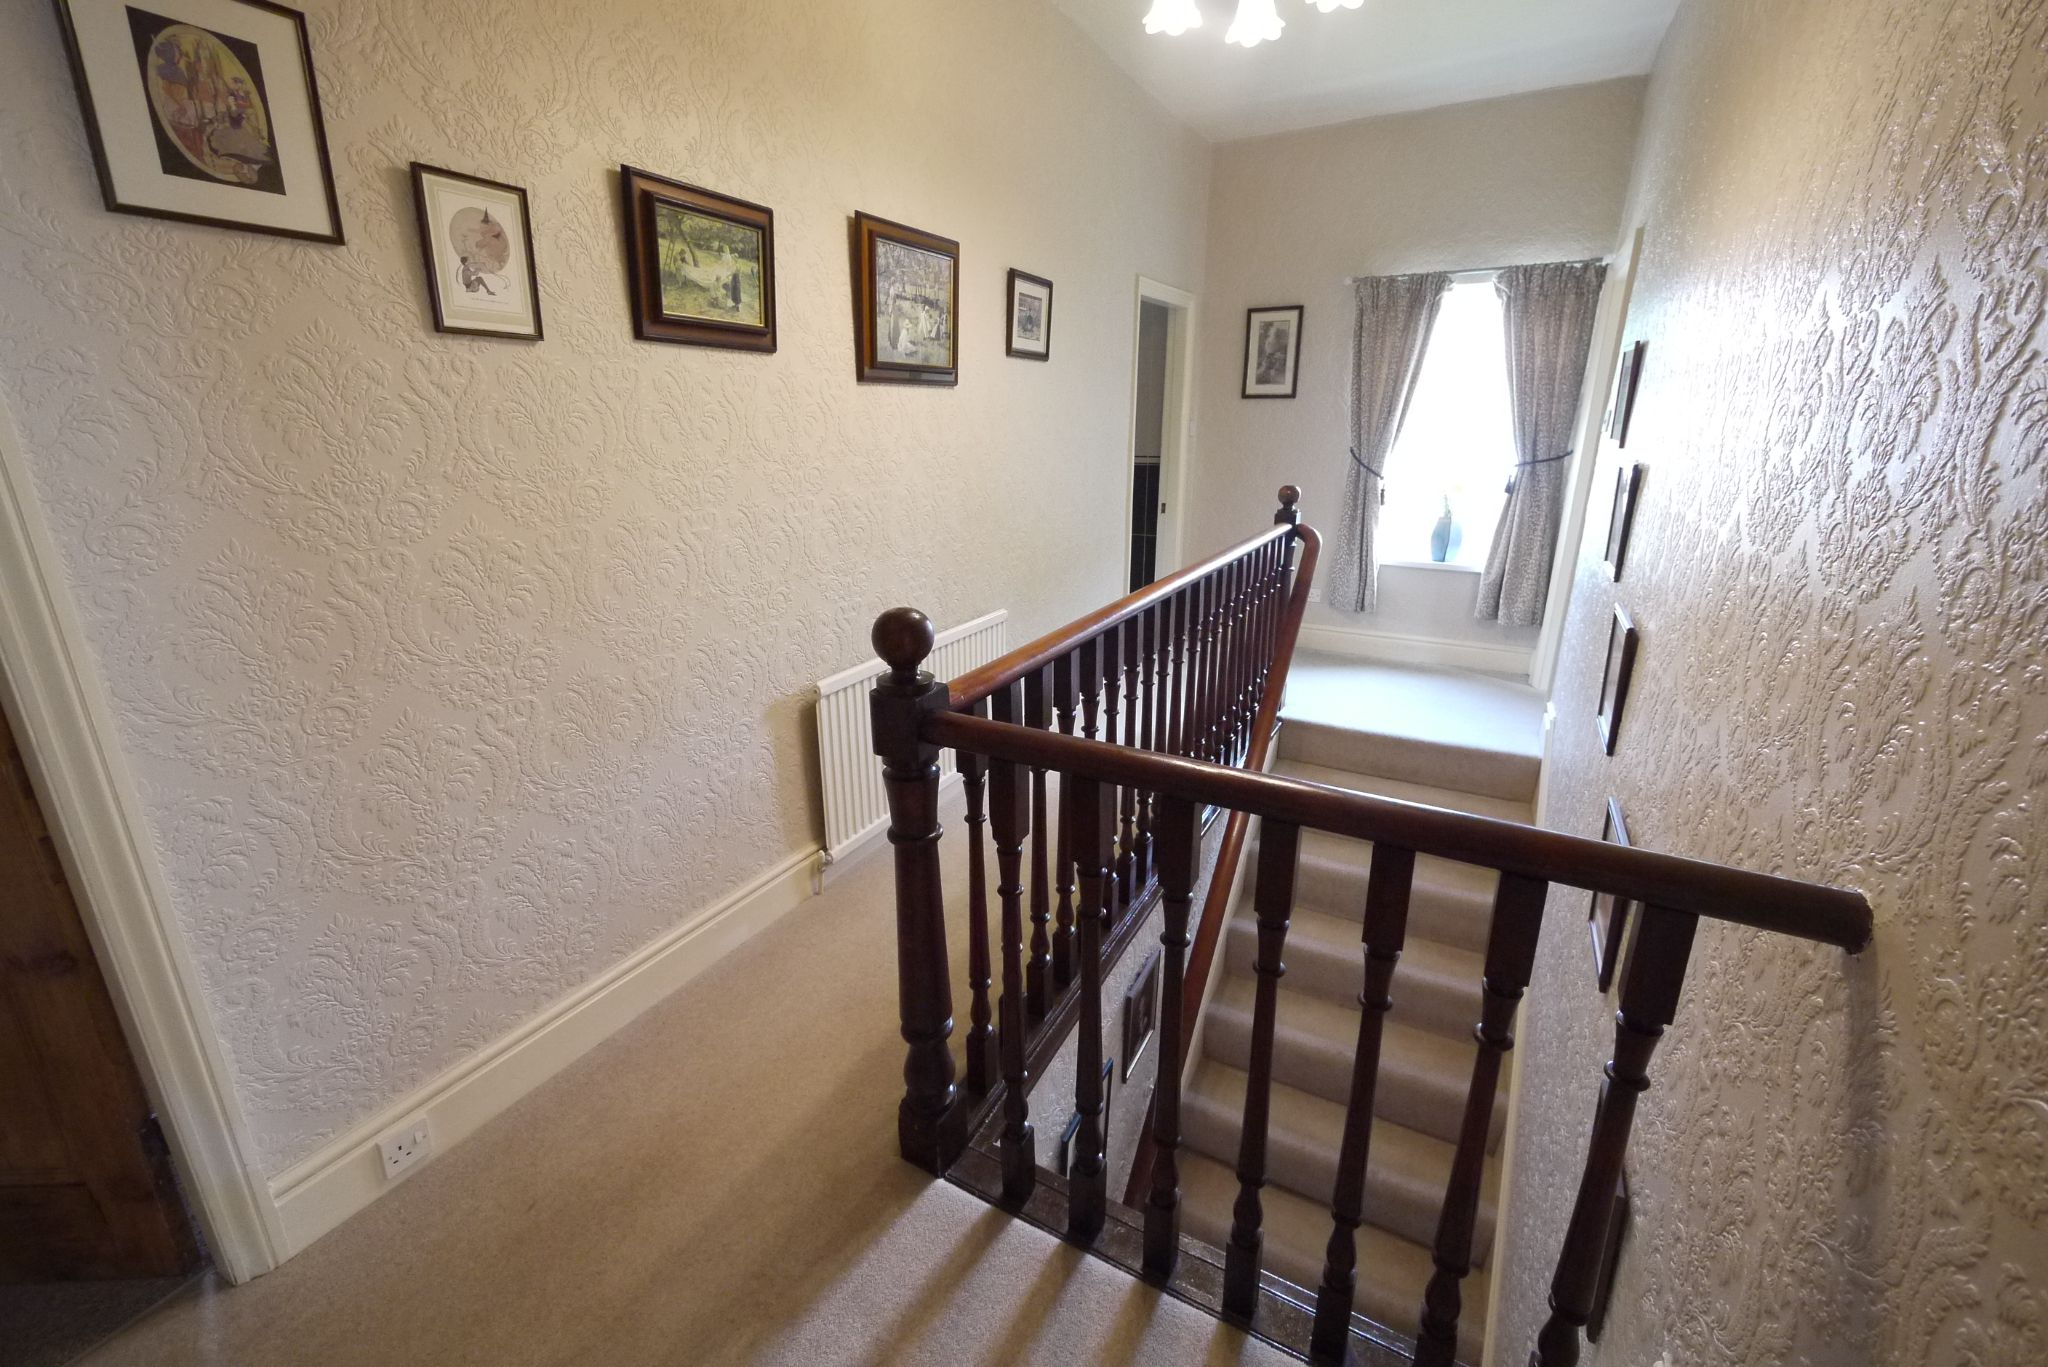 3 bedroom semi-detached house For Sale in Brighouse - Photograph 6.